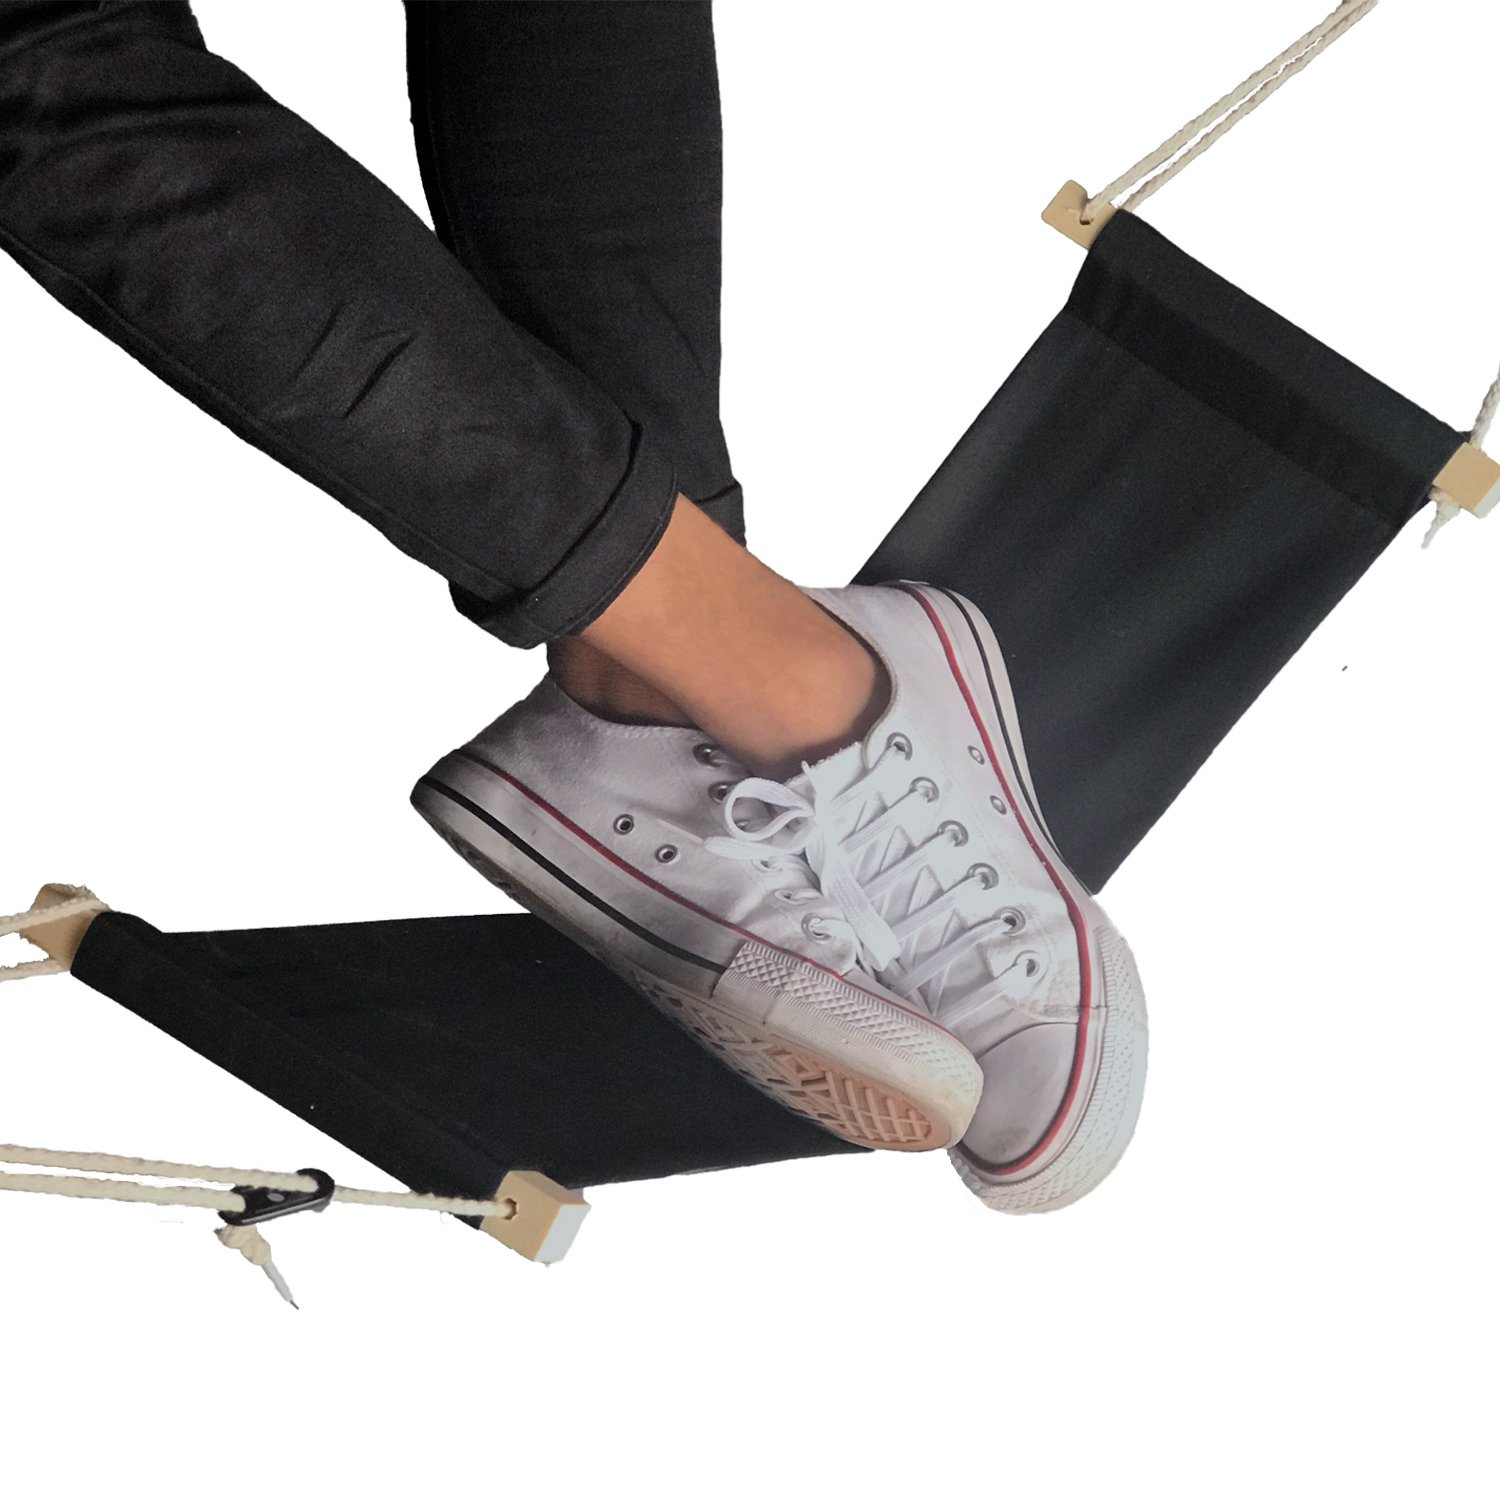 Nakimo Foot Hammock with An Extra Canvas as A Replacement - Portable Office Under Desk Footrest with Adjustable Durable Ropes, Black